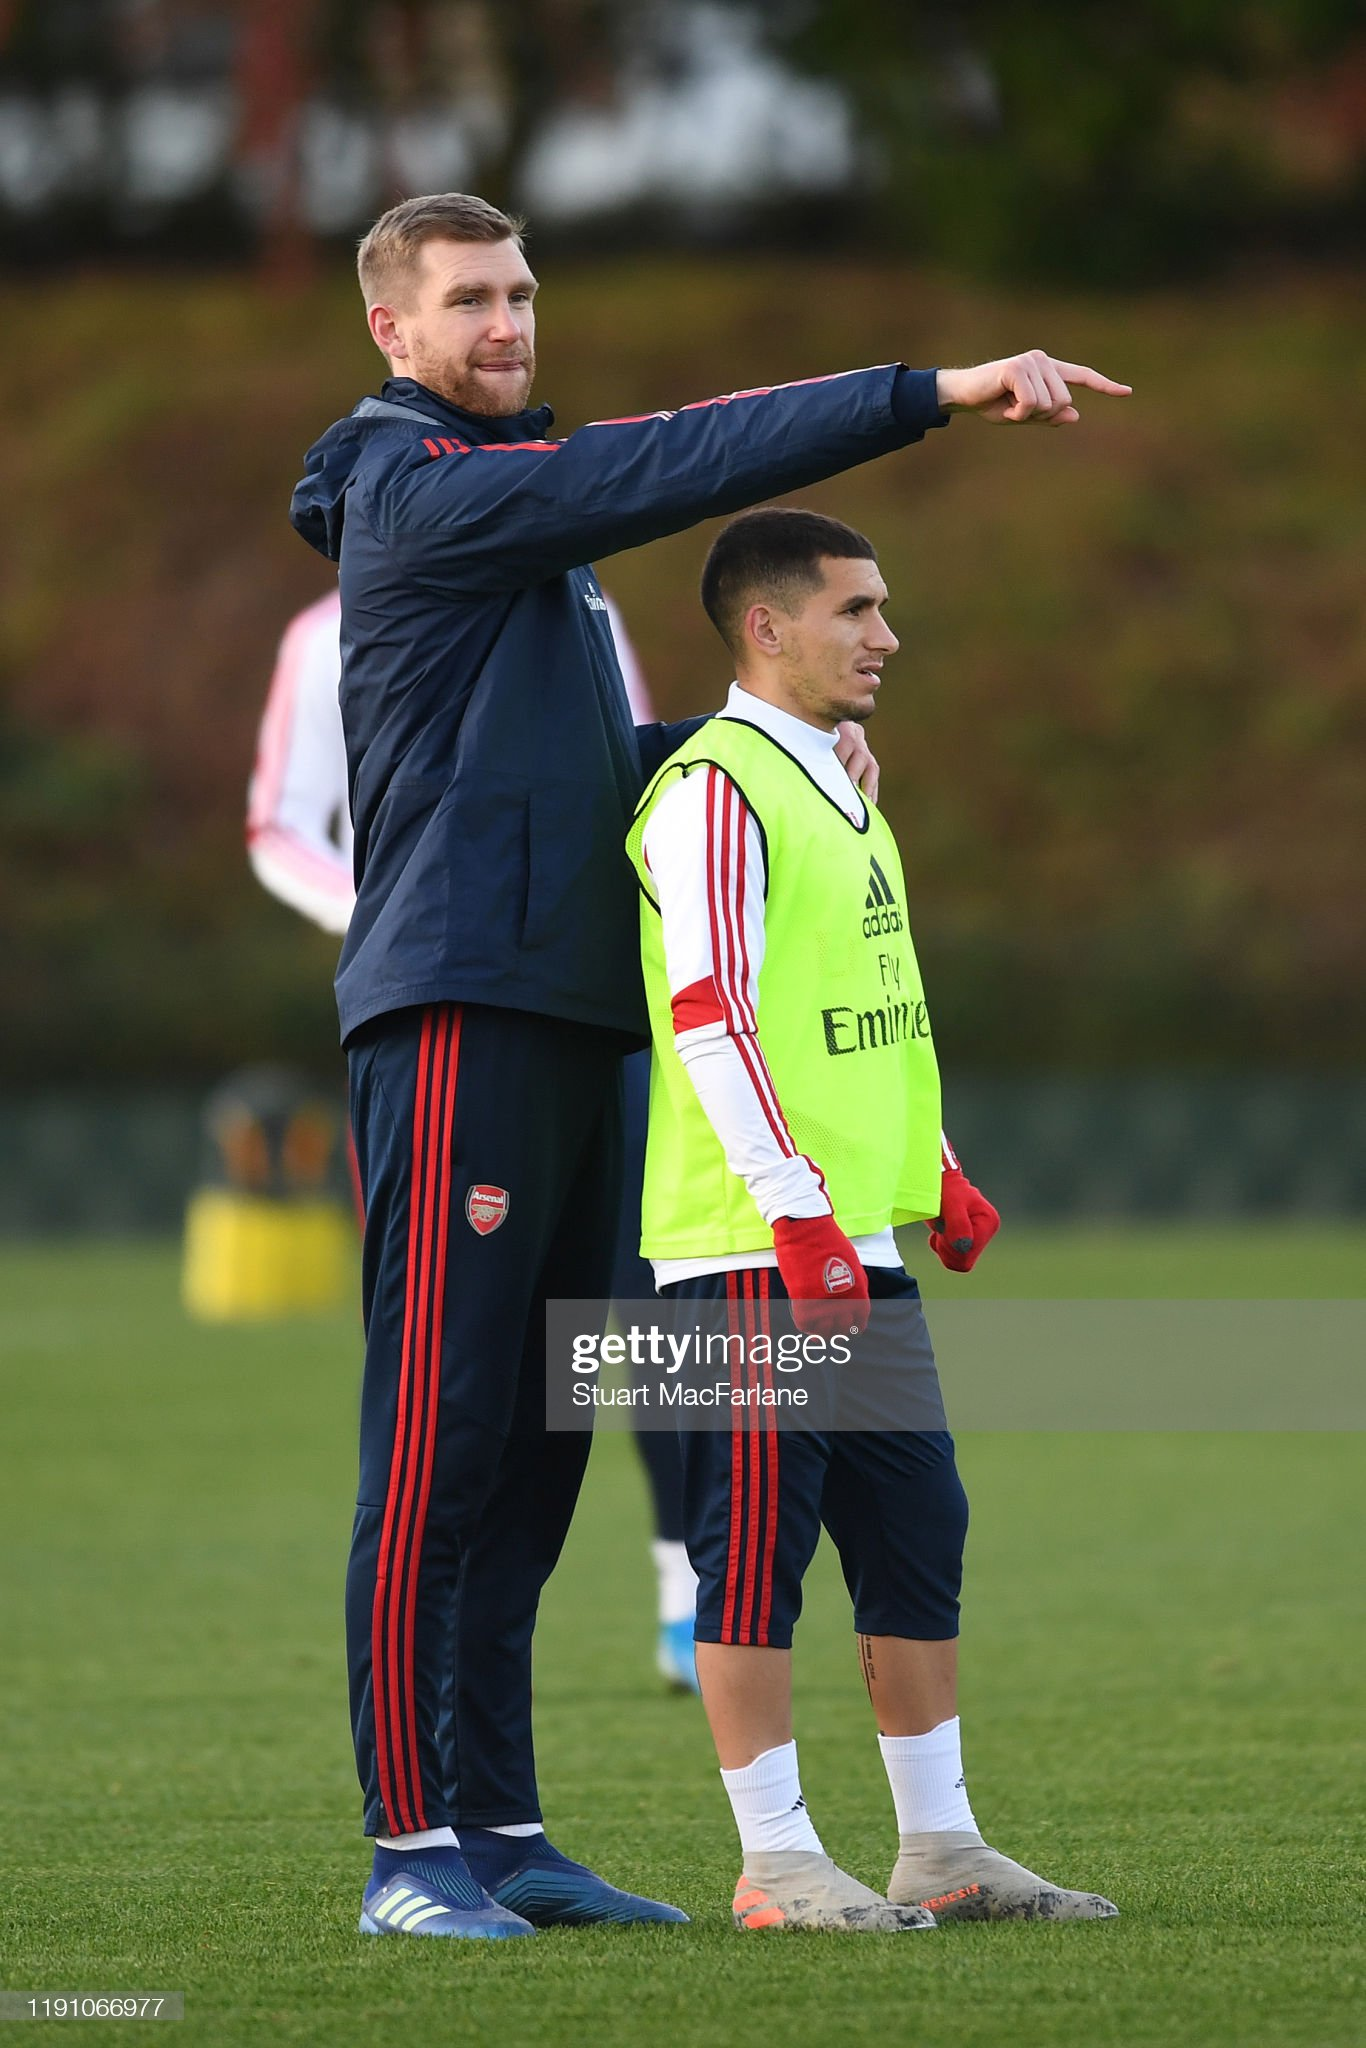 ¿Cuánto mide Lucas Torreira? - Altura - Real height Arsenal-academy-director-per-mertesacker-with-lucas-torreira-during-a-picture-id1191066977?s=2048x2048